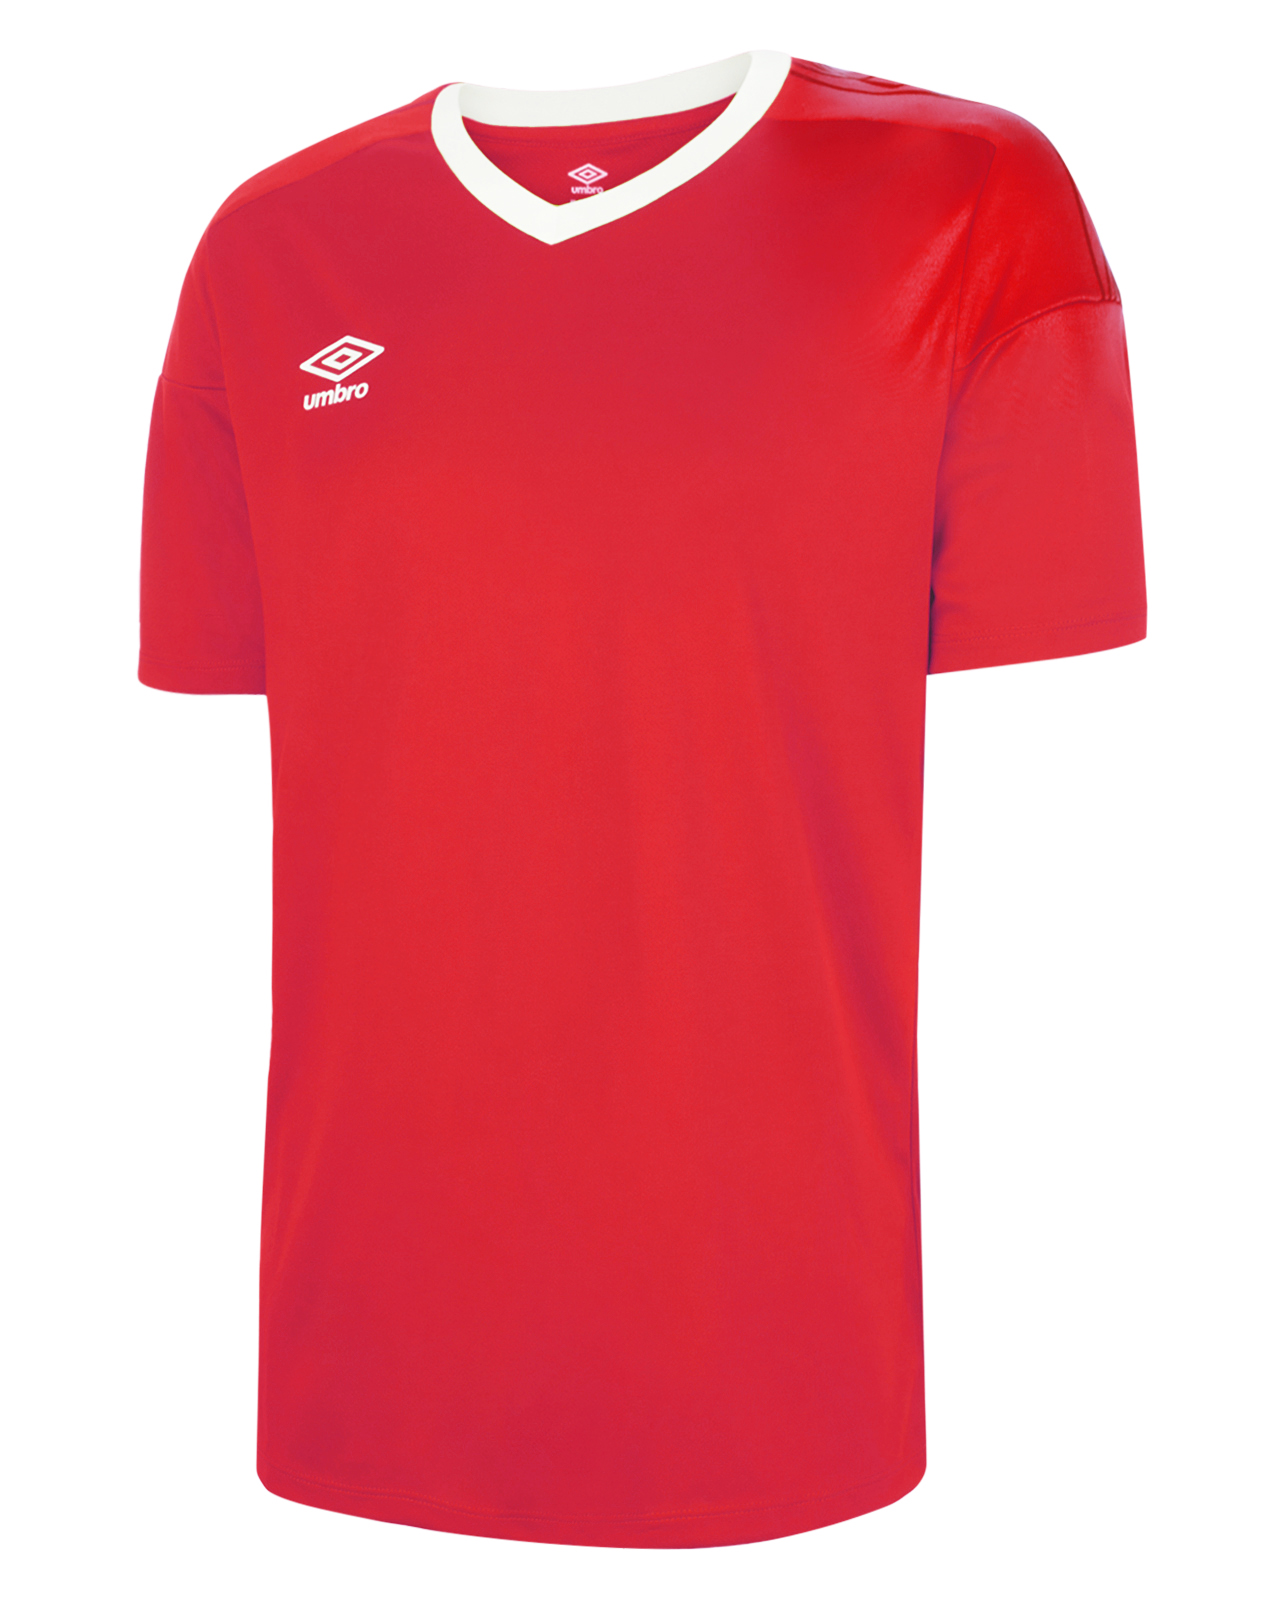 Umbro Legacy jersey in vermillion (red) with white v-neck collar